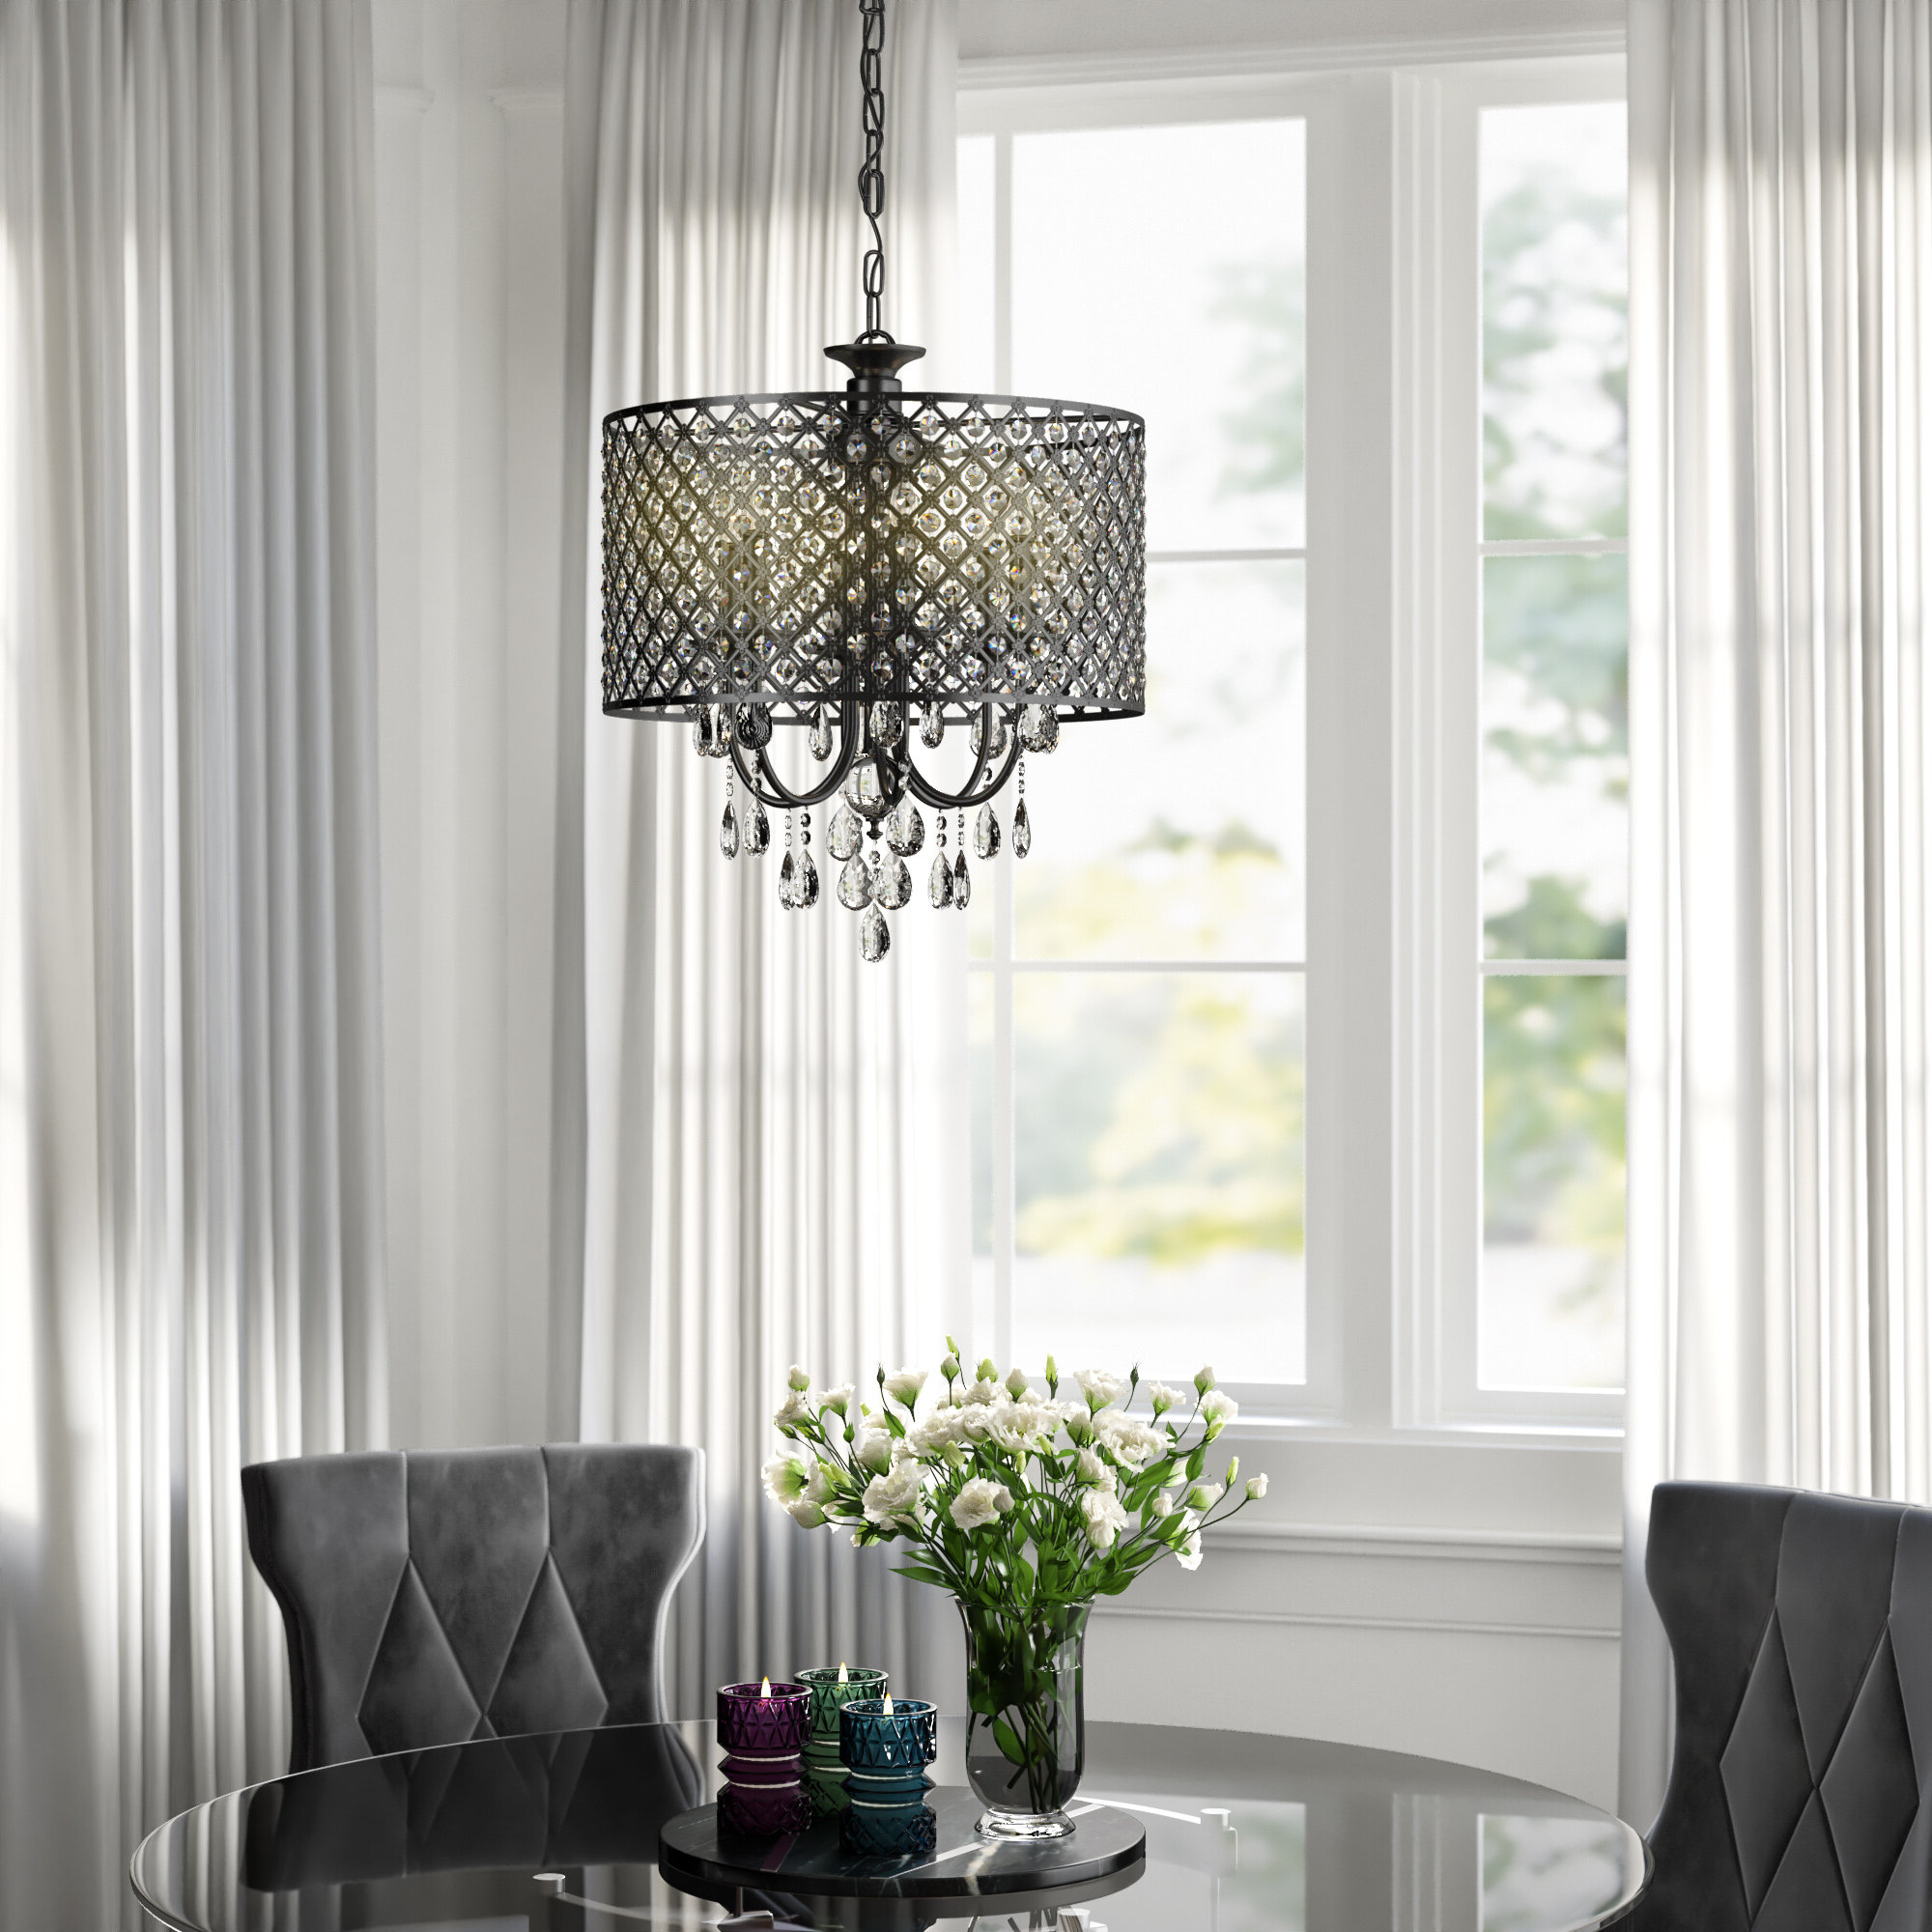 Aldgate 4 Light Crystal Chandeliers Within Newest Mckamey 4 Light Crystal Chandelier (View 9 of 25)